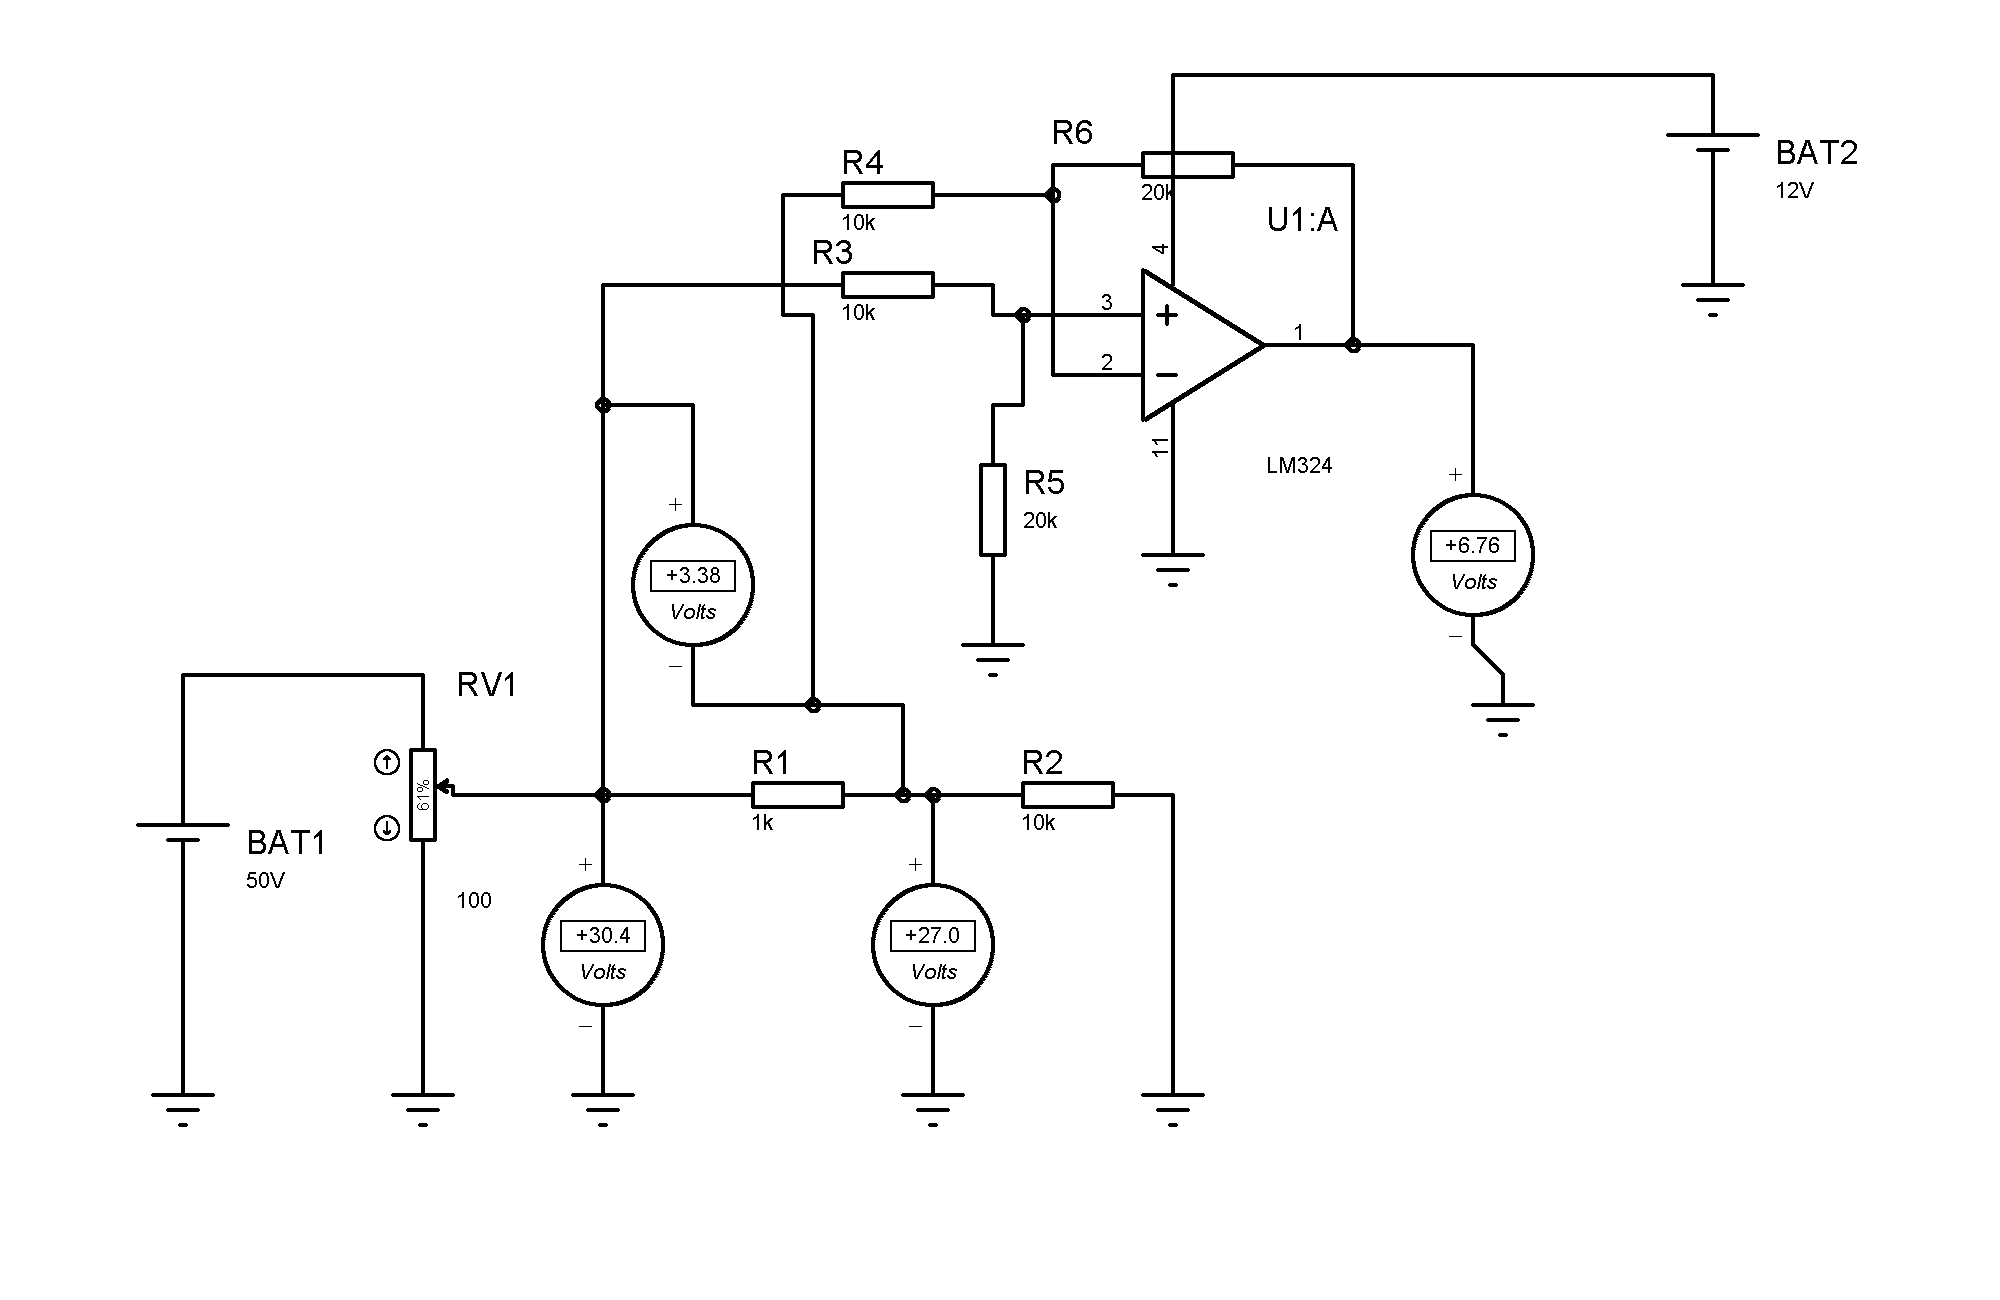 4 wire measurement circuit vdo gauges wiring diagrams amplifier problem measuring current in a high voltage